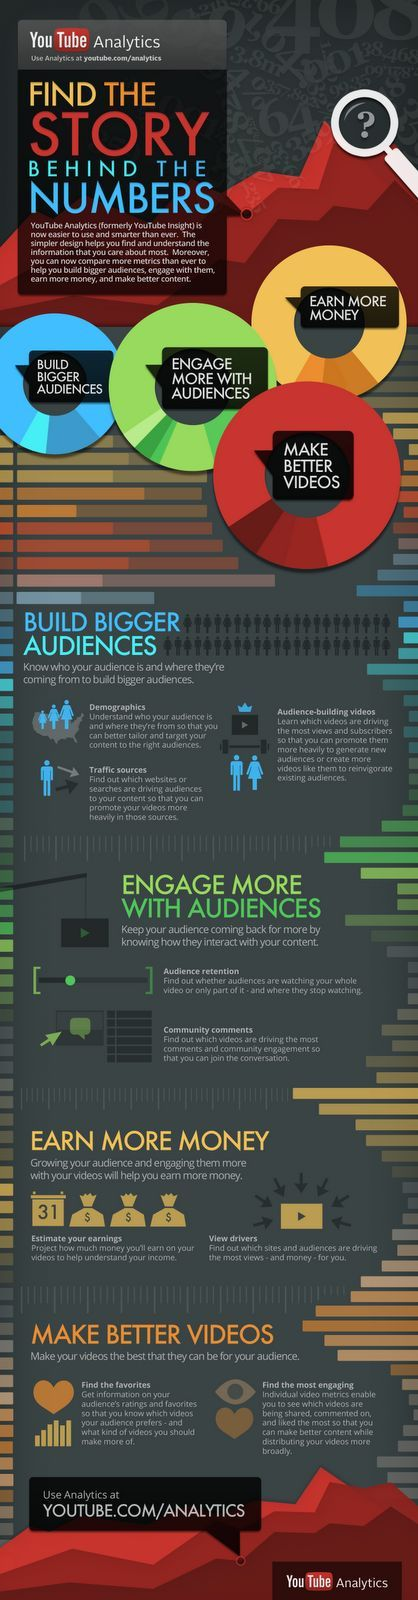 YouTube Analytics vervangt YouTube Insight [infographic]